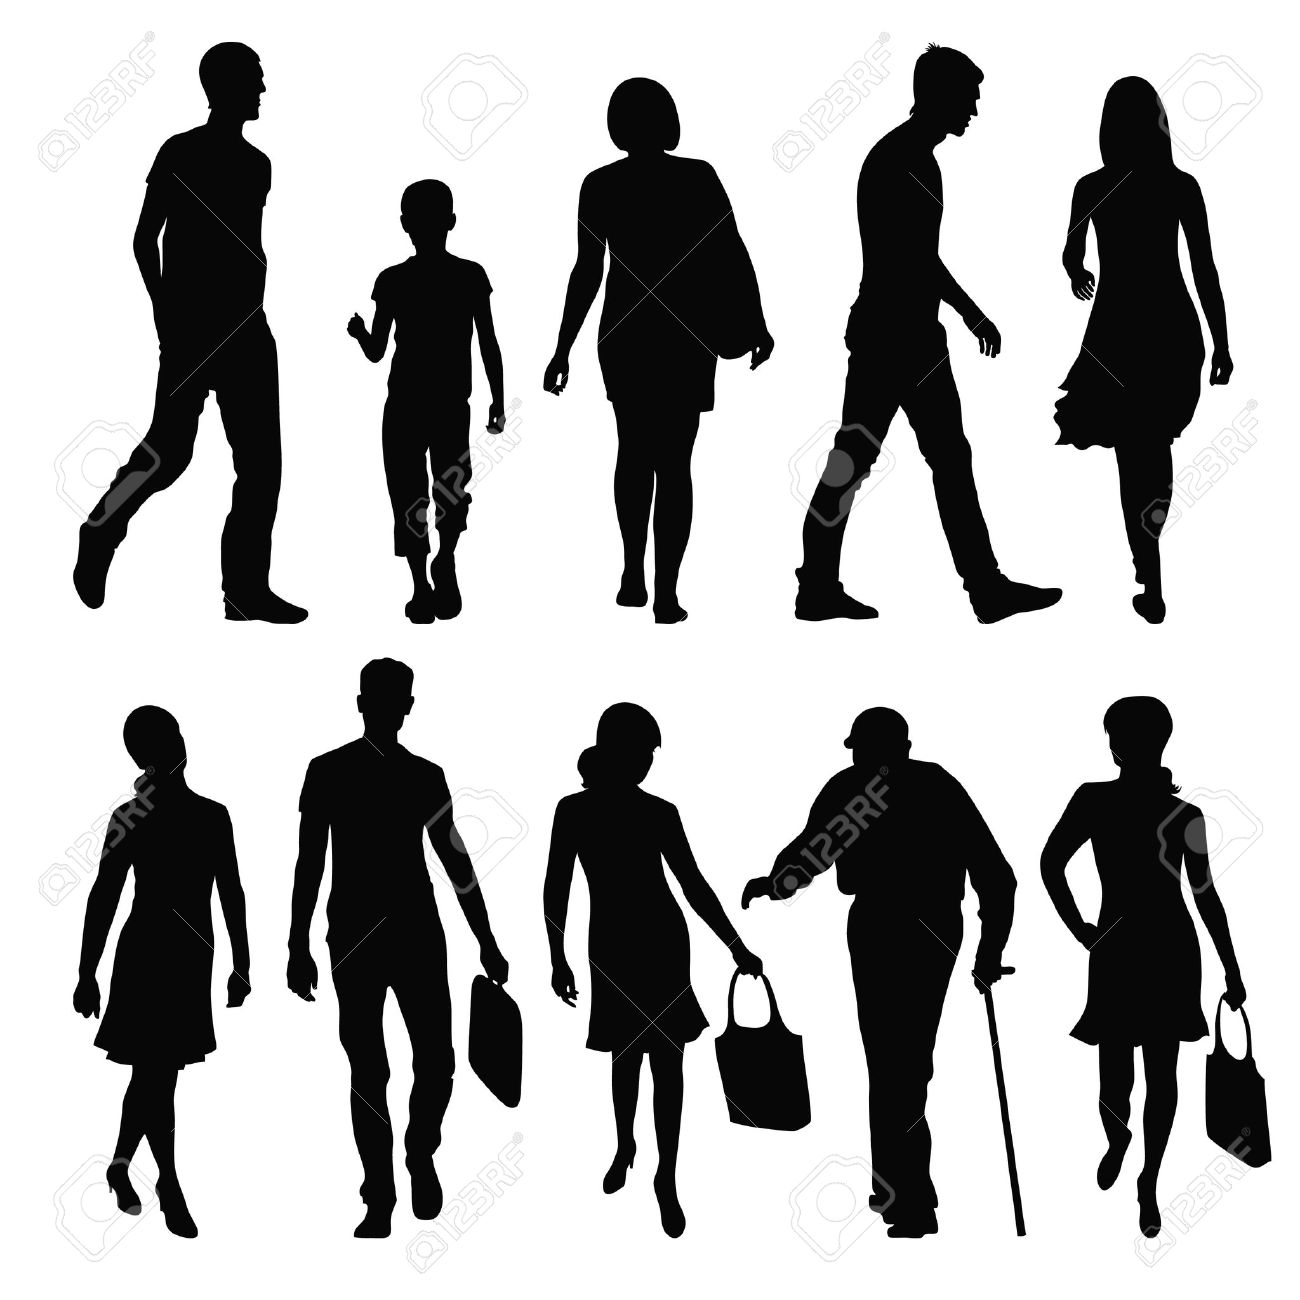 silhouettes of people in different poses Stock Vector - 24687948